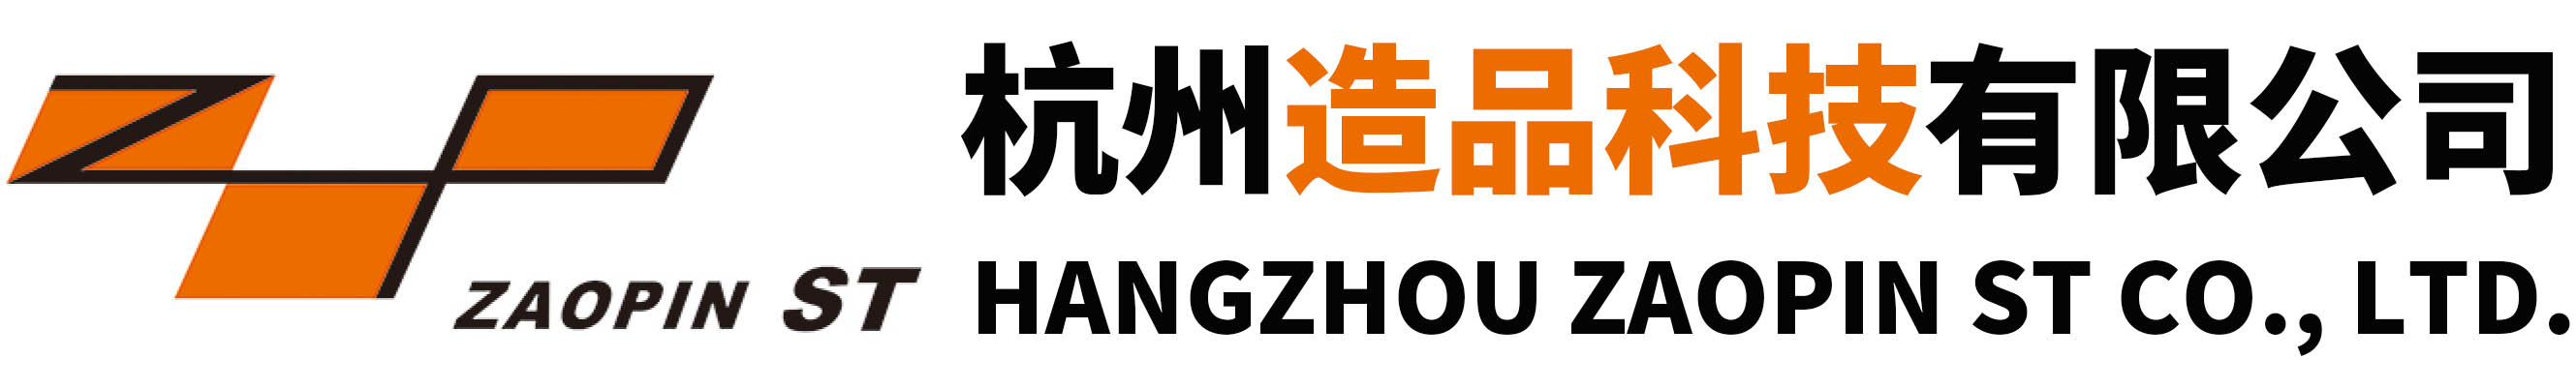 HANGZHOU ZAOPINST CO.,LTD.